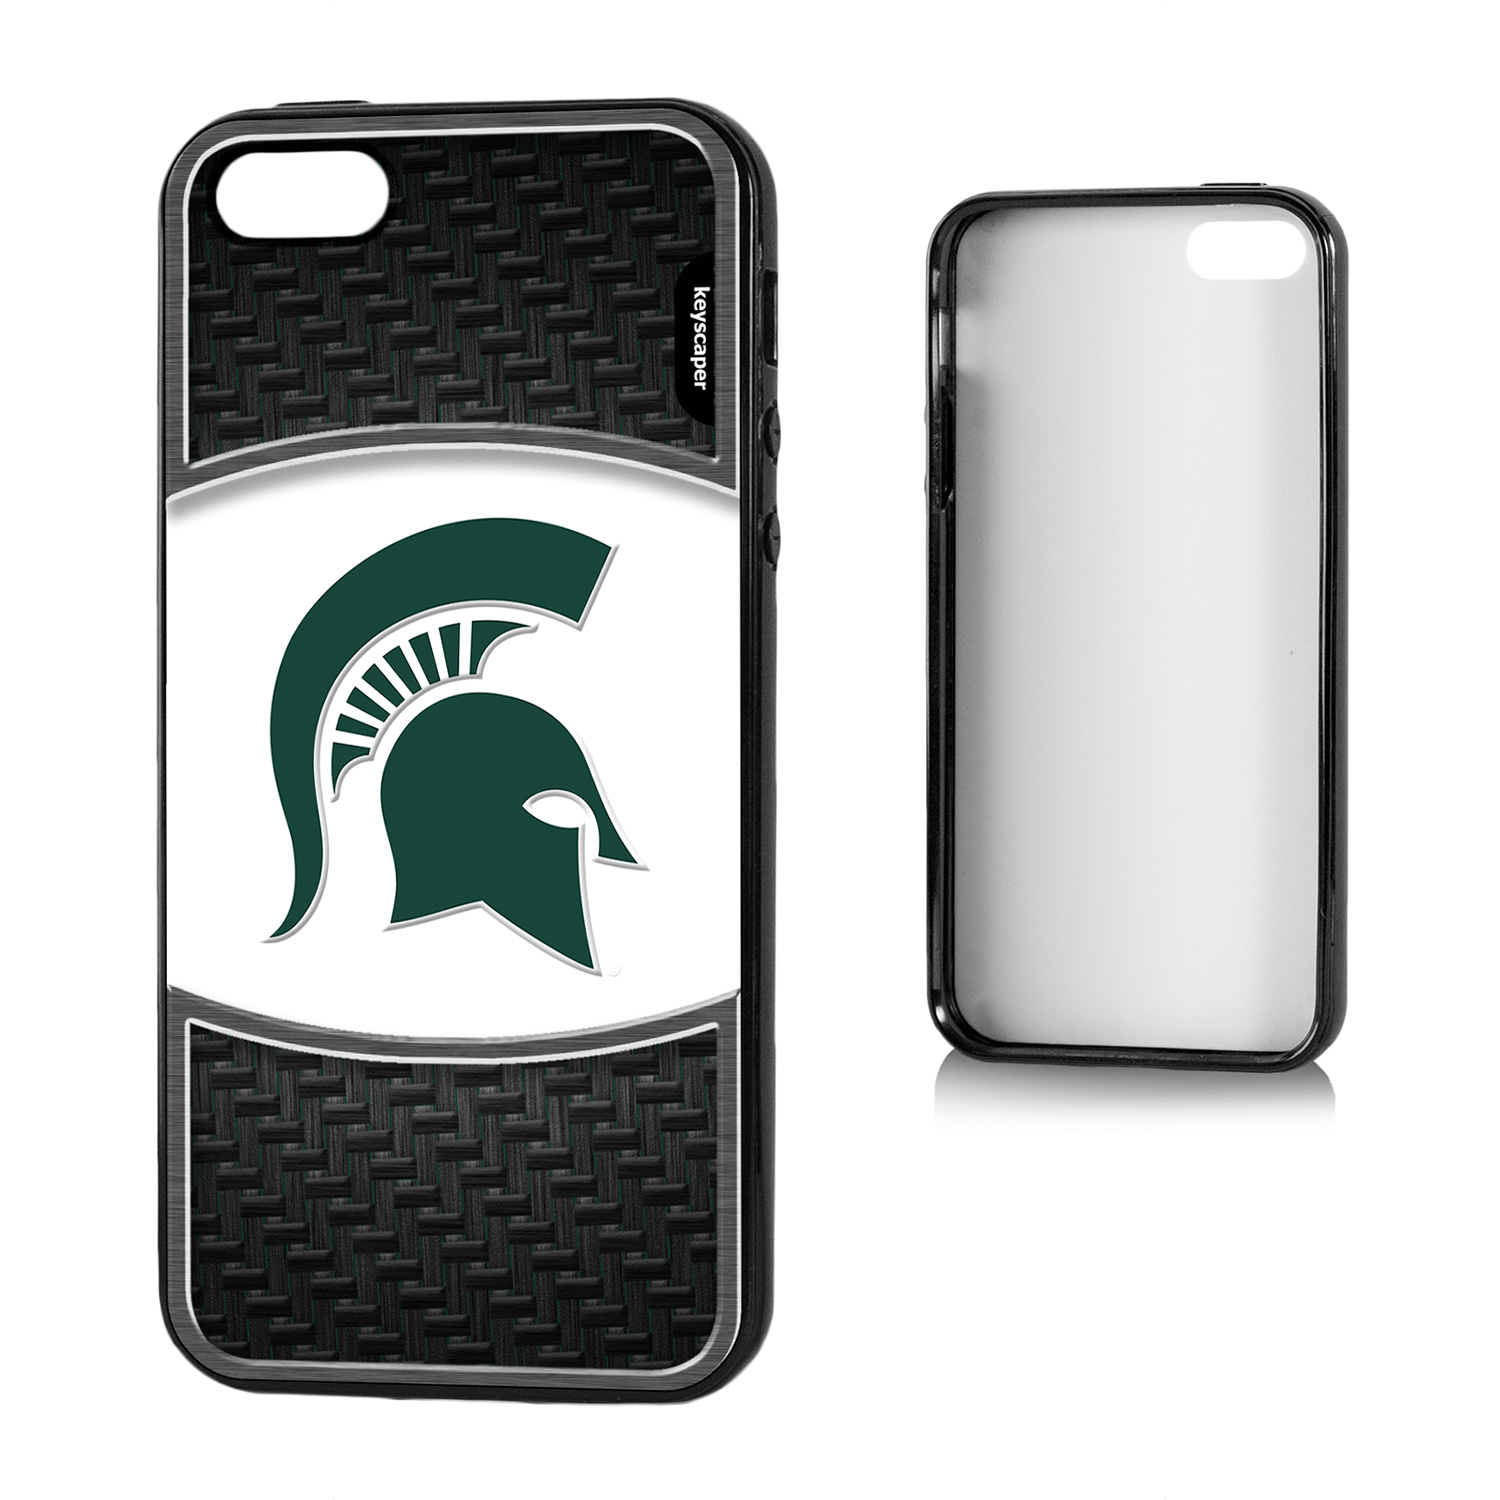 Michigan State Spartans iPhone 5 and iPhone 5s Bumper Case